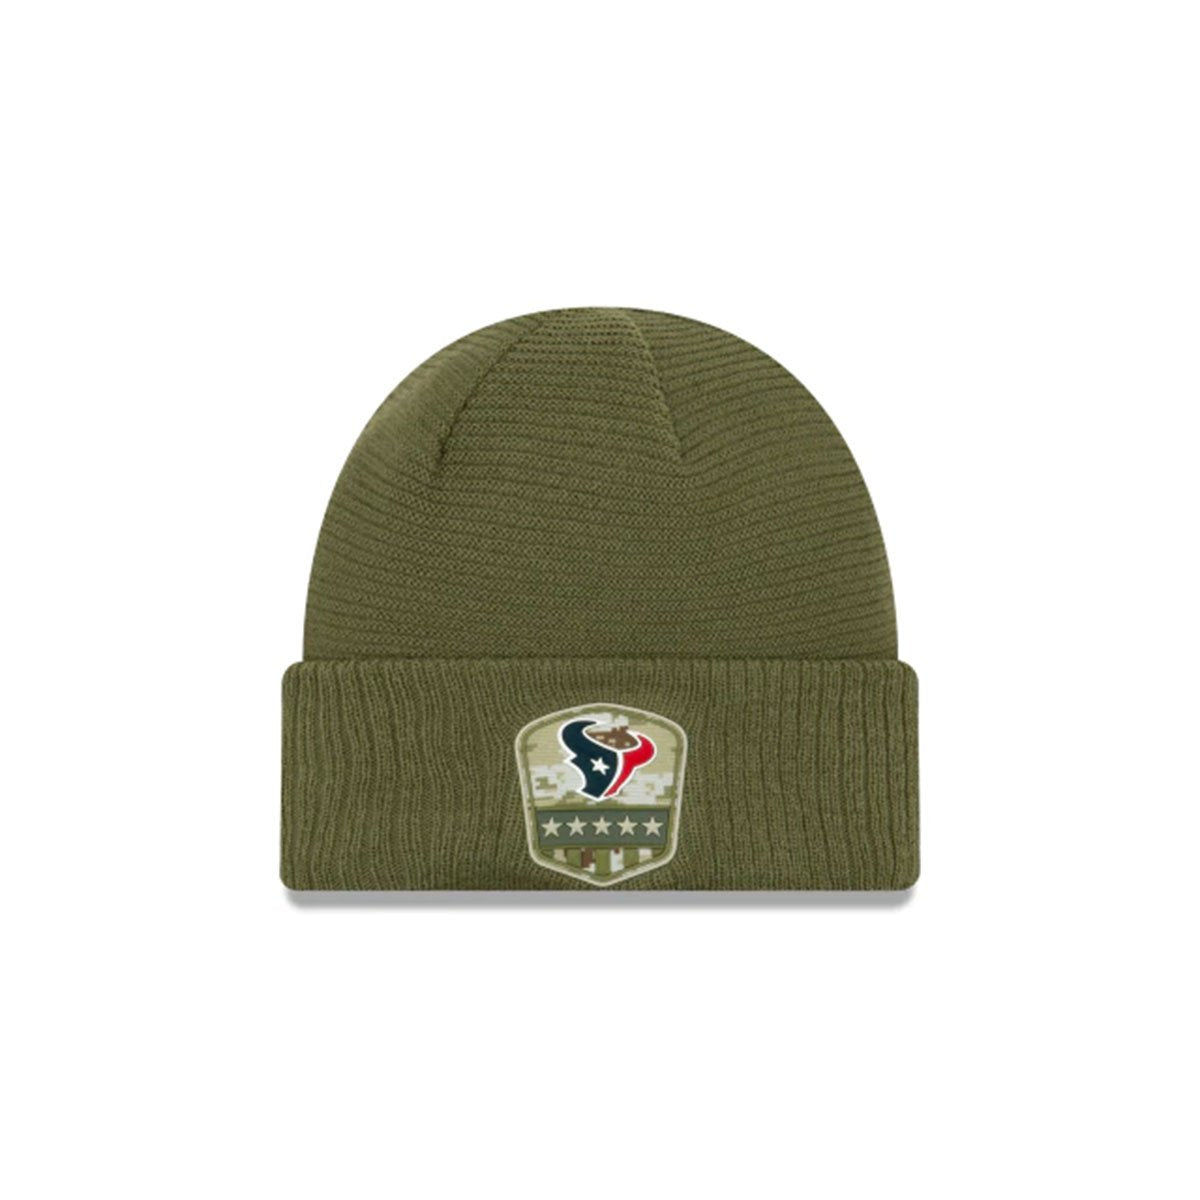 HOUSTON TEXANS SALUTE TO SERVICE CUFF KNIT GREEN/BLUE